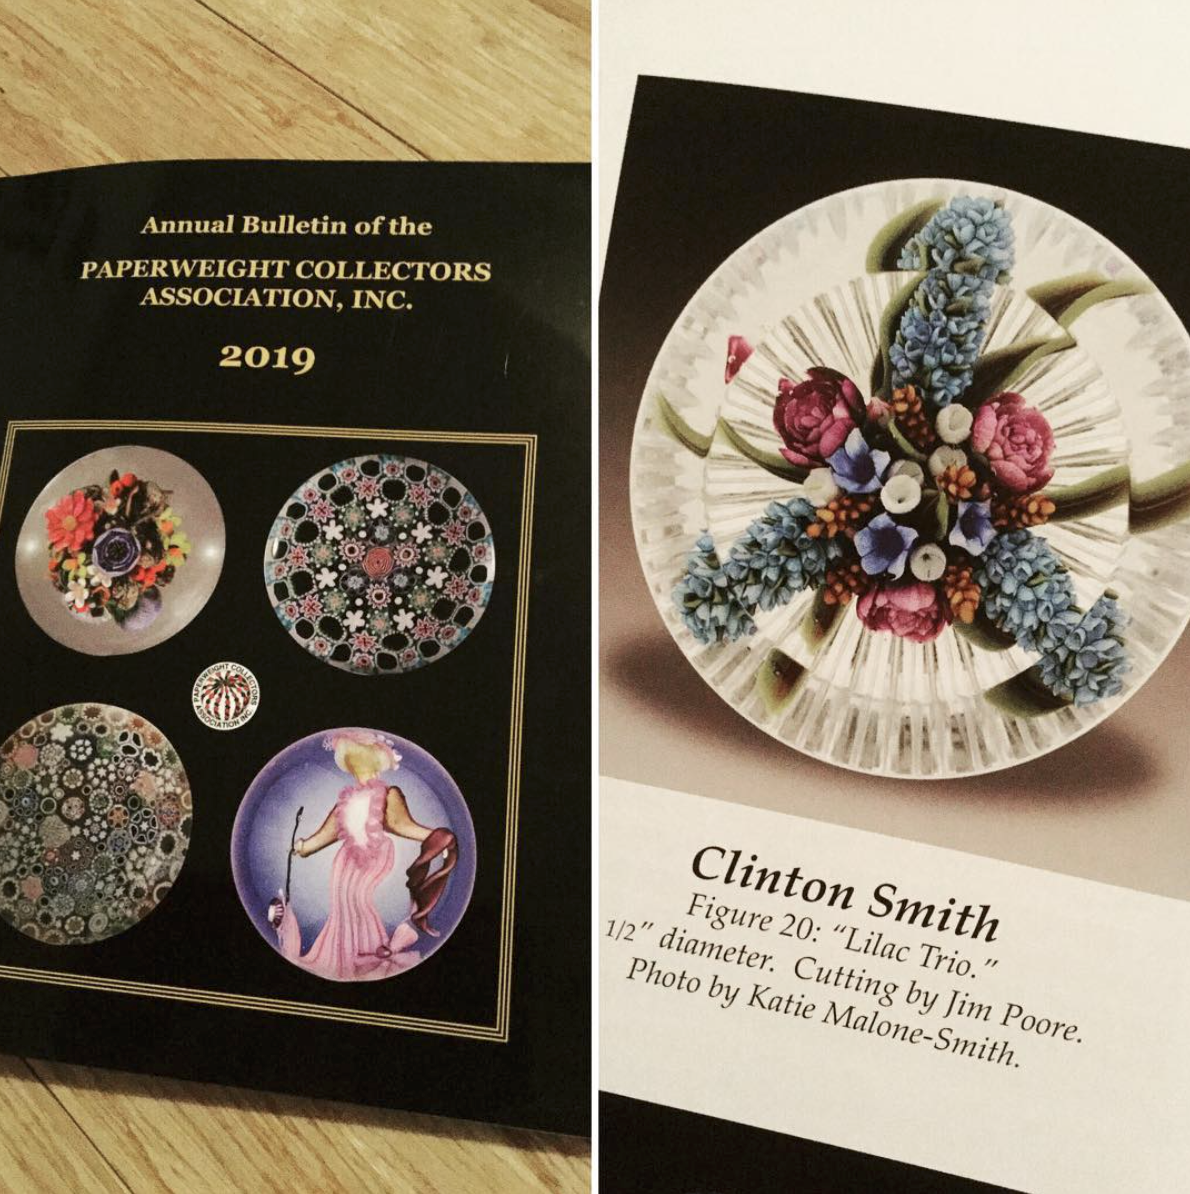 2019 Paperweight Collector's Association Bulletin